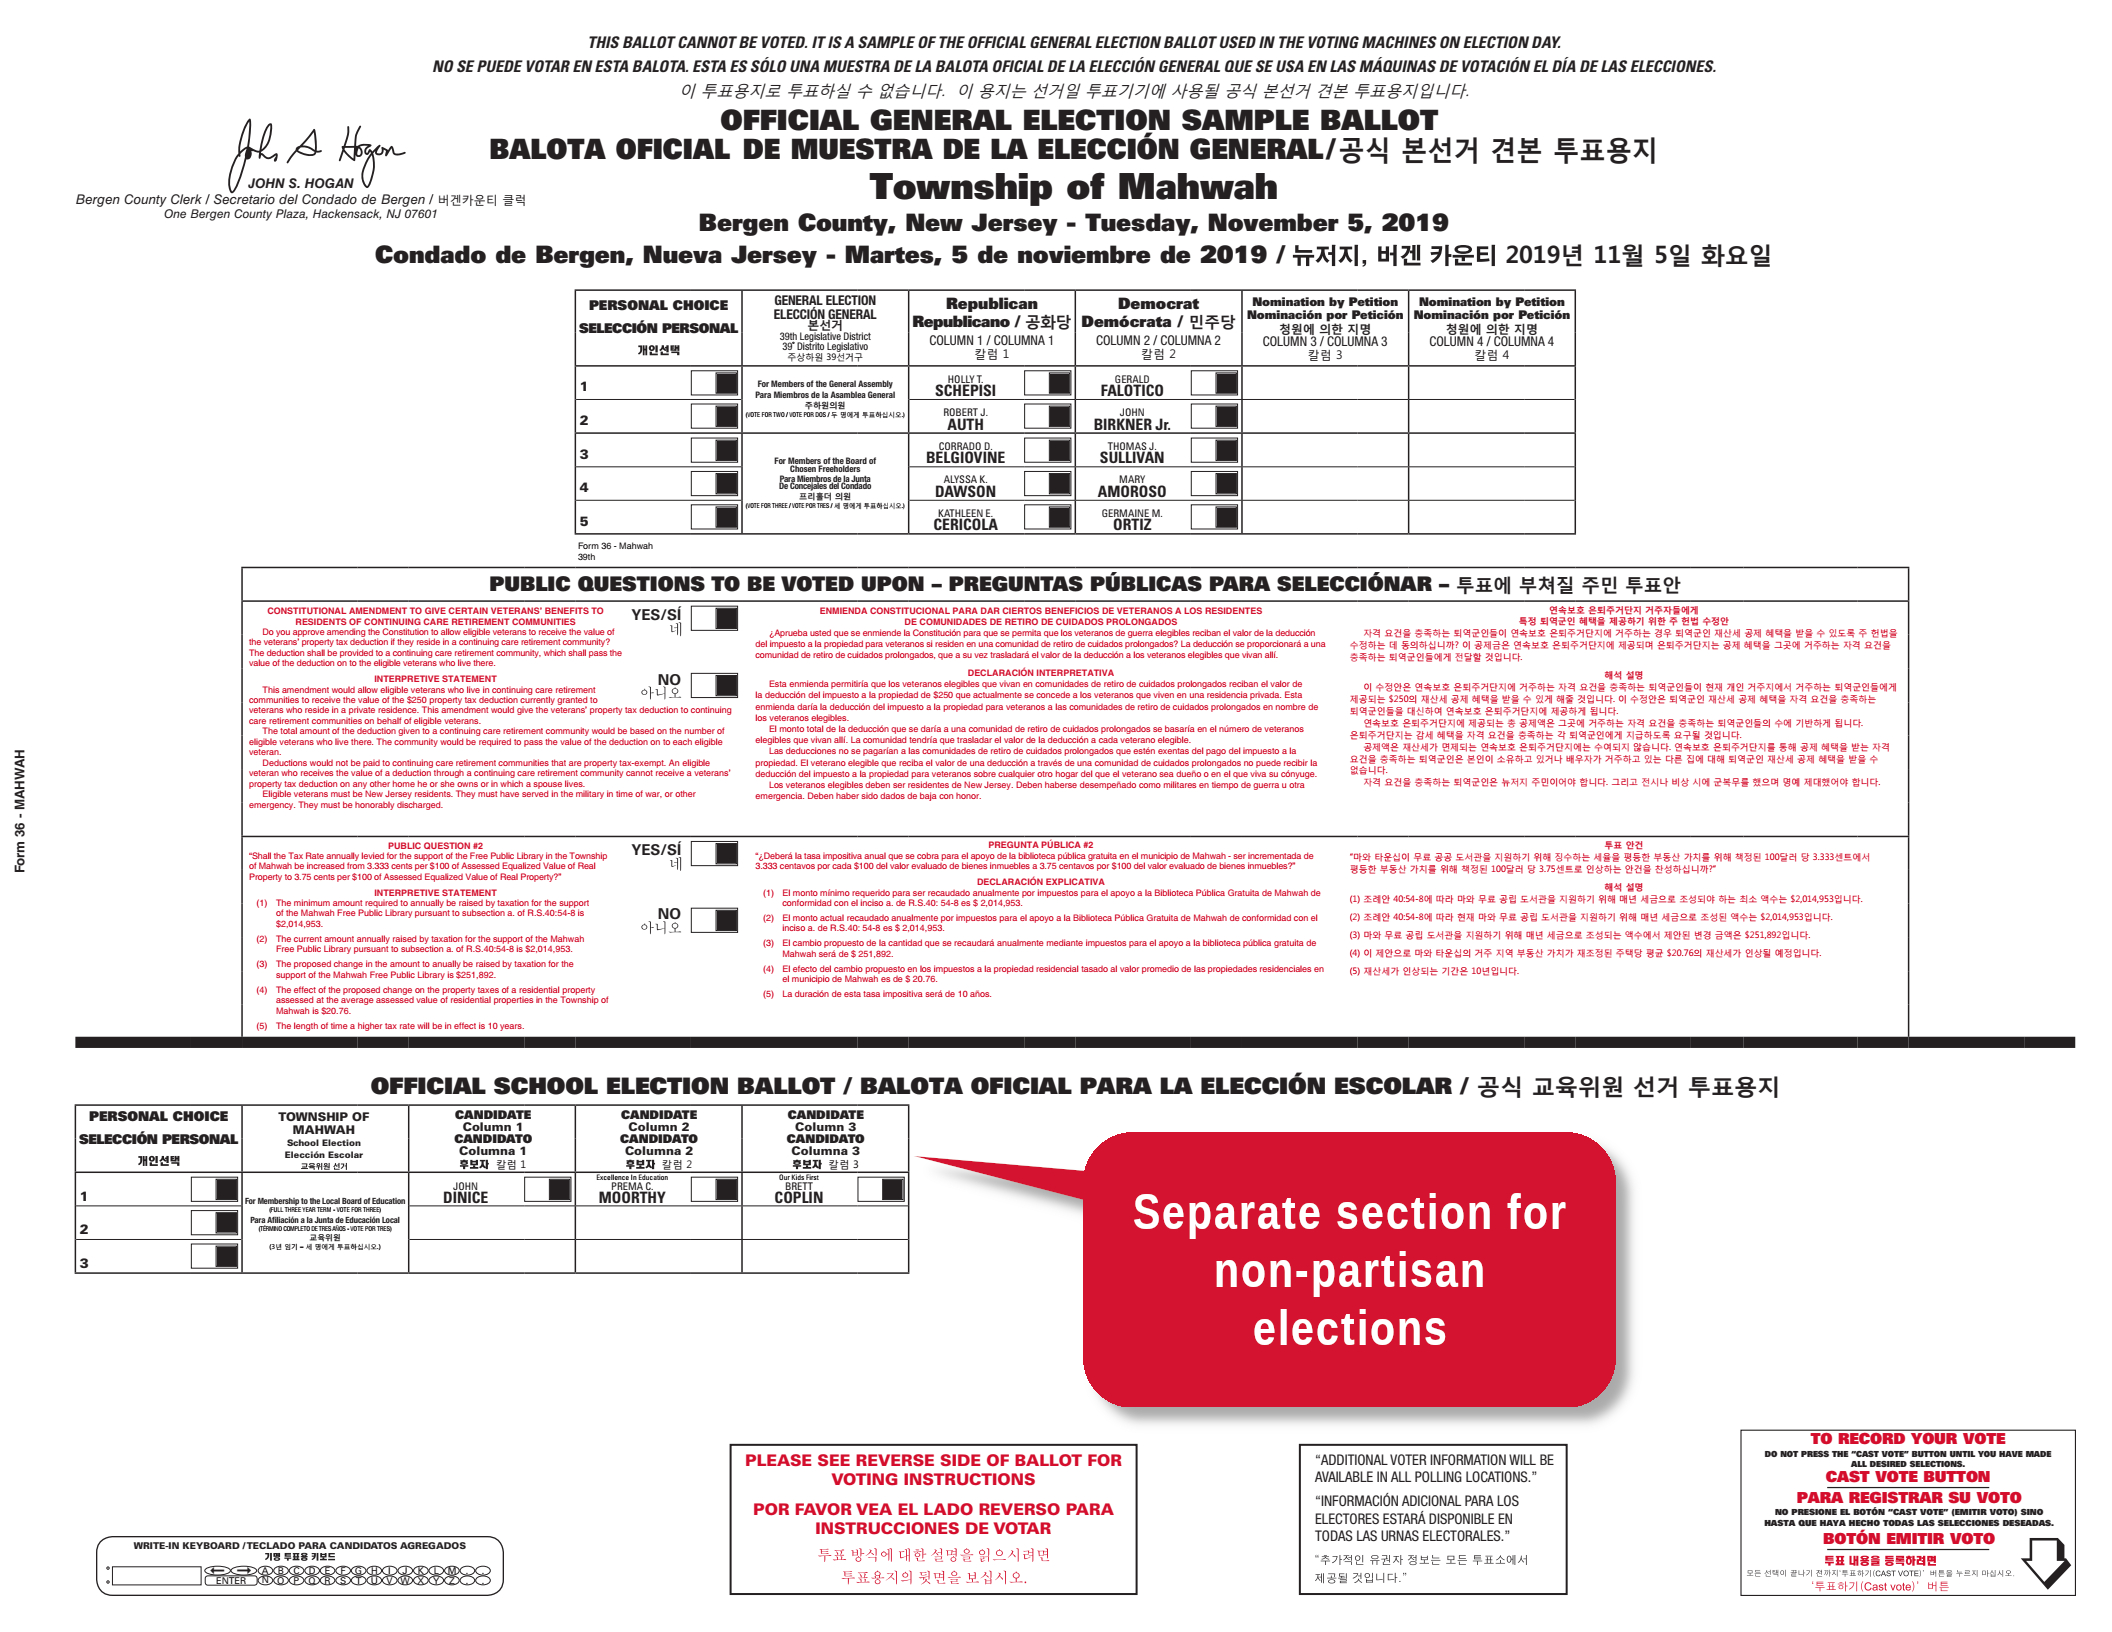 image of sample ballot with Mahway Municipal election separated from partisan races